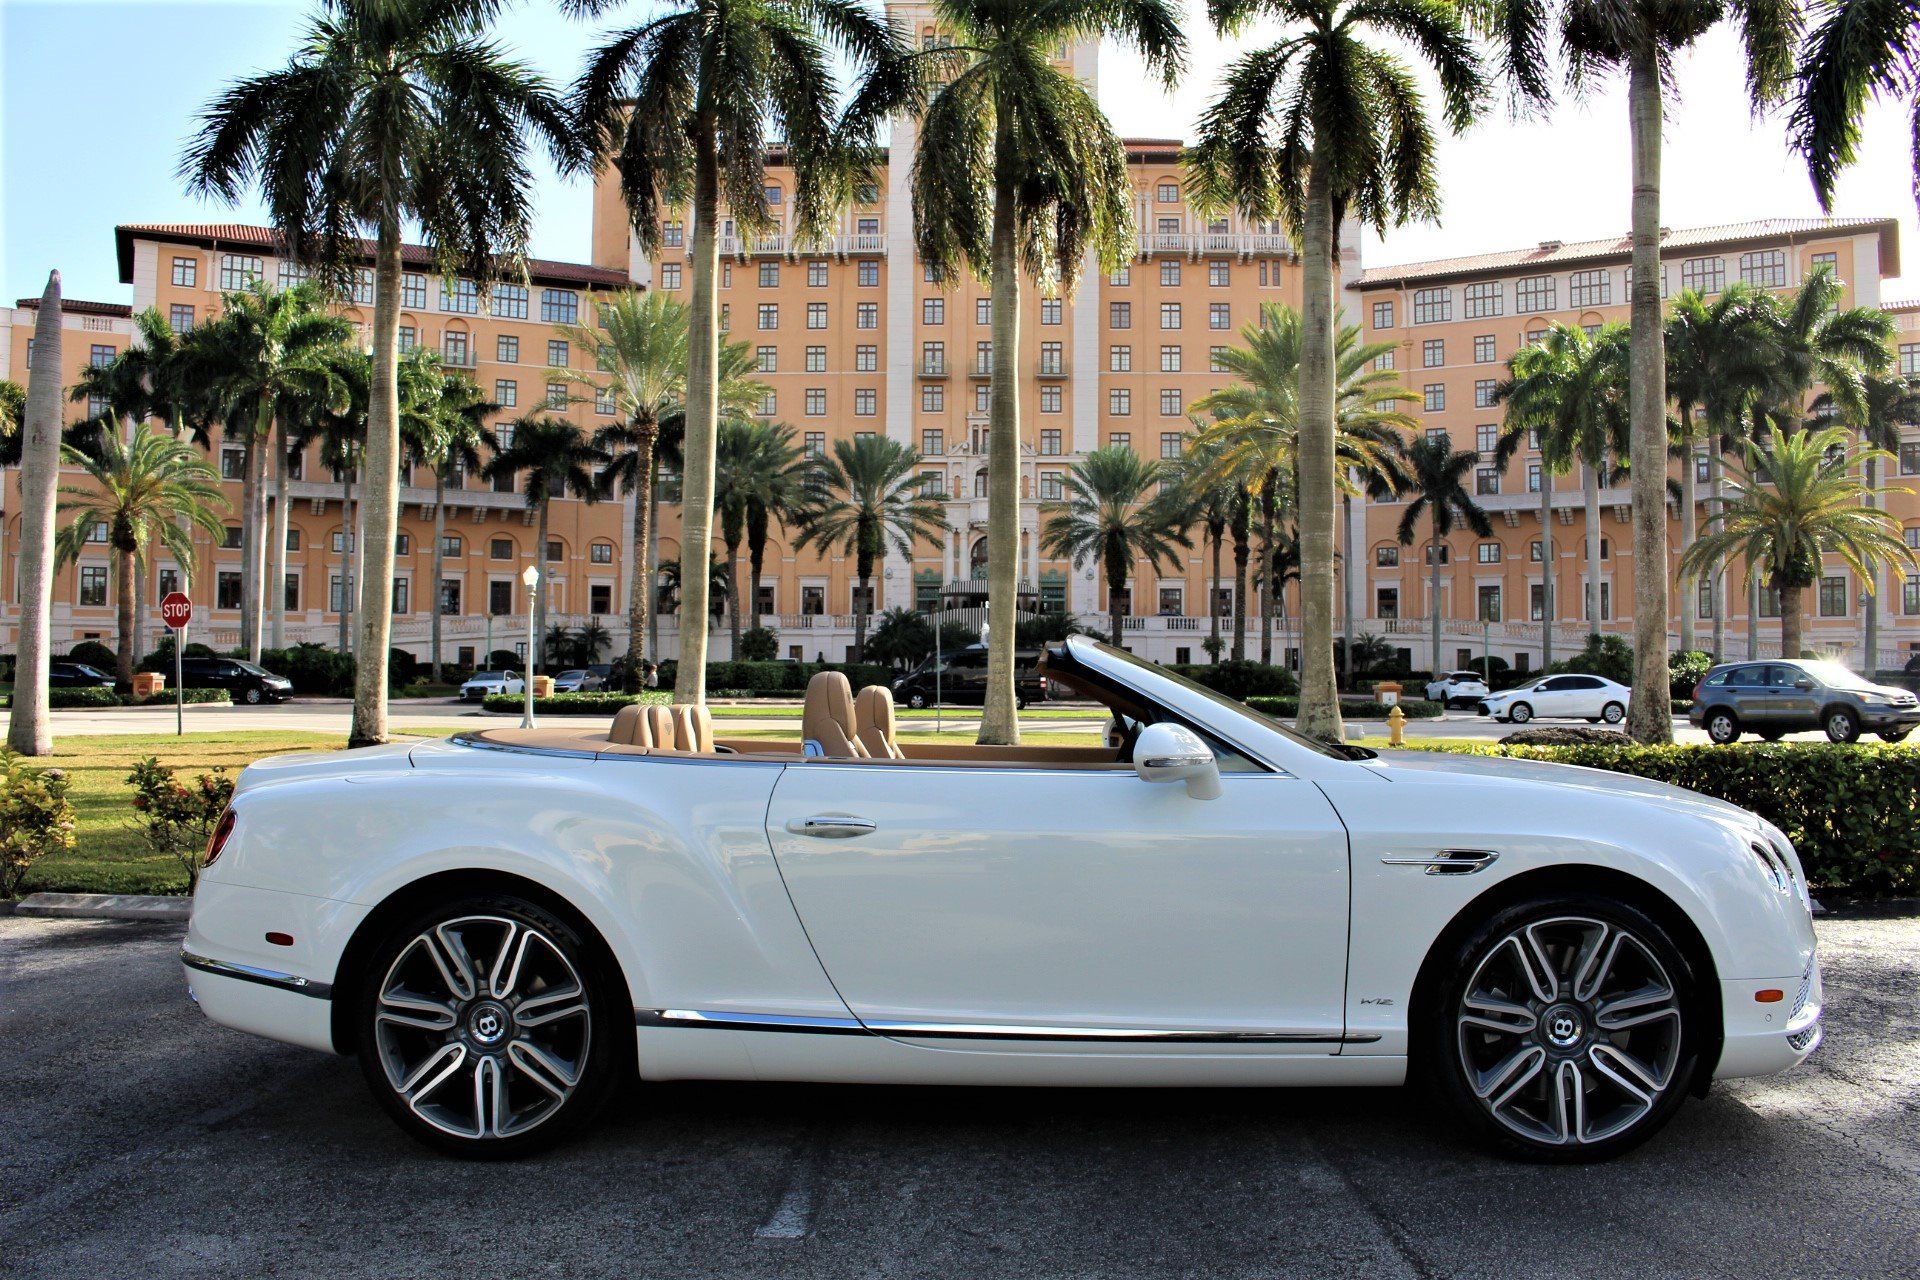 Used 2016 Bentley Continental GT for sale Sold at The Gables Sports Cars in Miami FL 33146 1